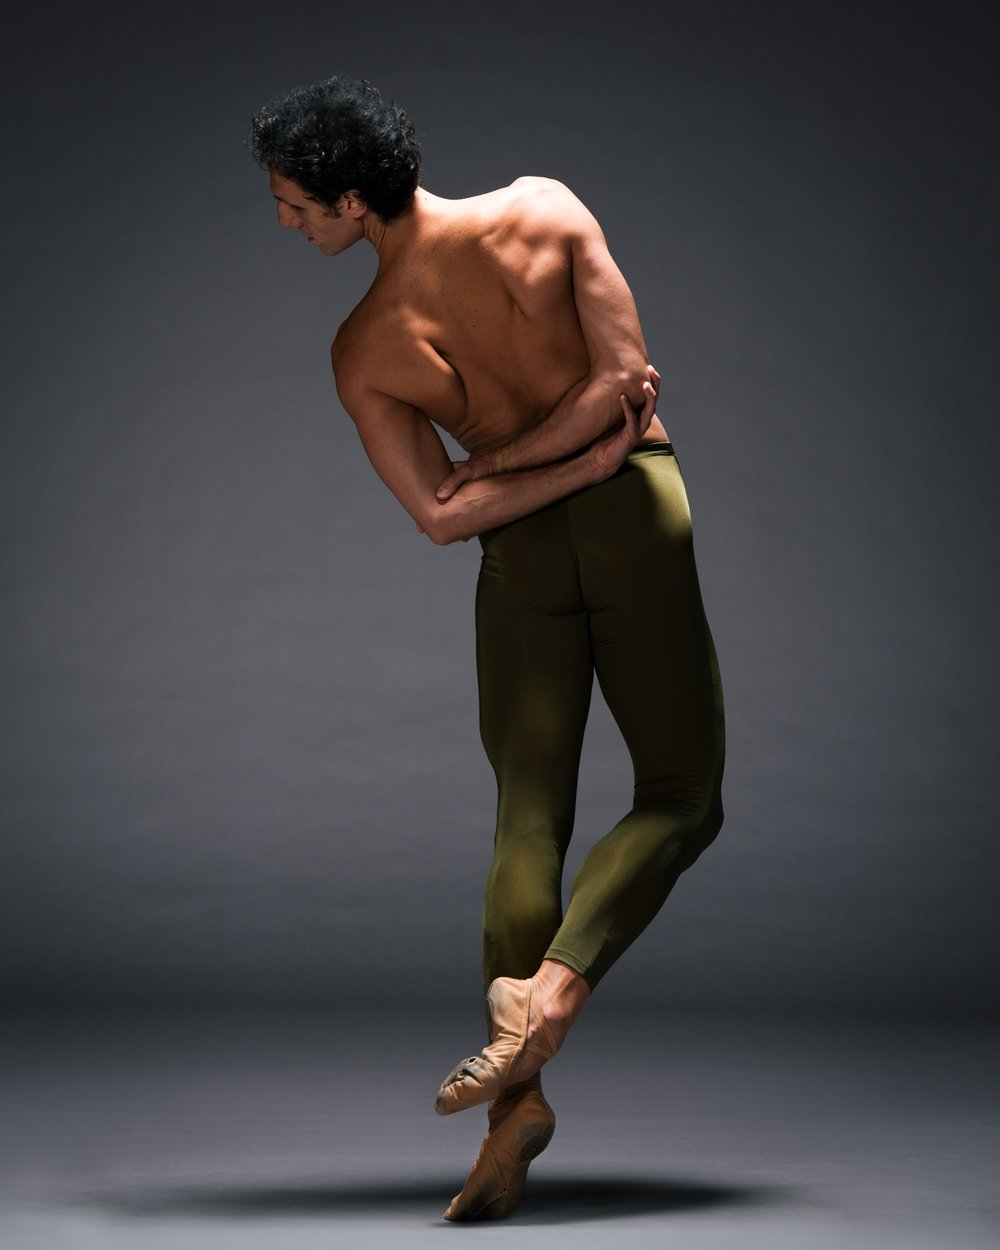 """At 6' 3"" and a dead ringer for Michelangelo's David, Luciano is a mighty presence. He evokes an animal energy with his seemingly endless lines."" - Nancy Wozny for Pointe Magazine January 2010."